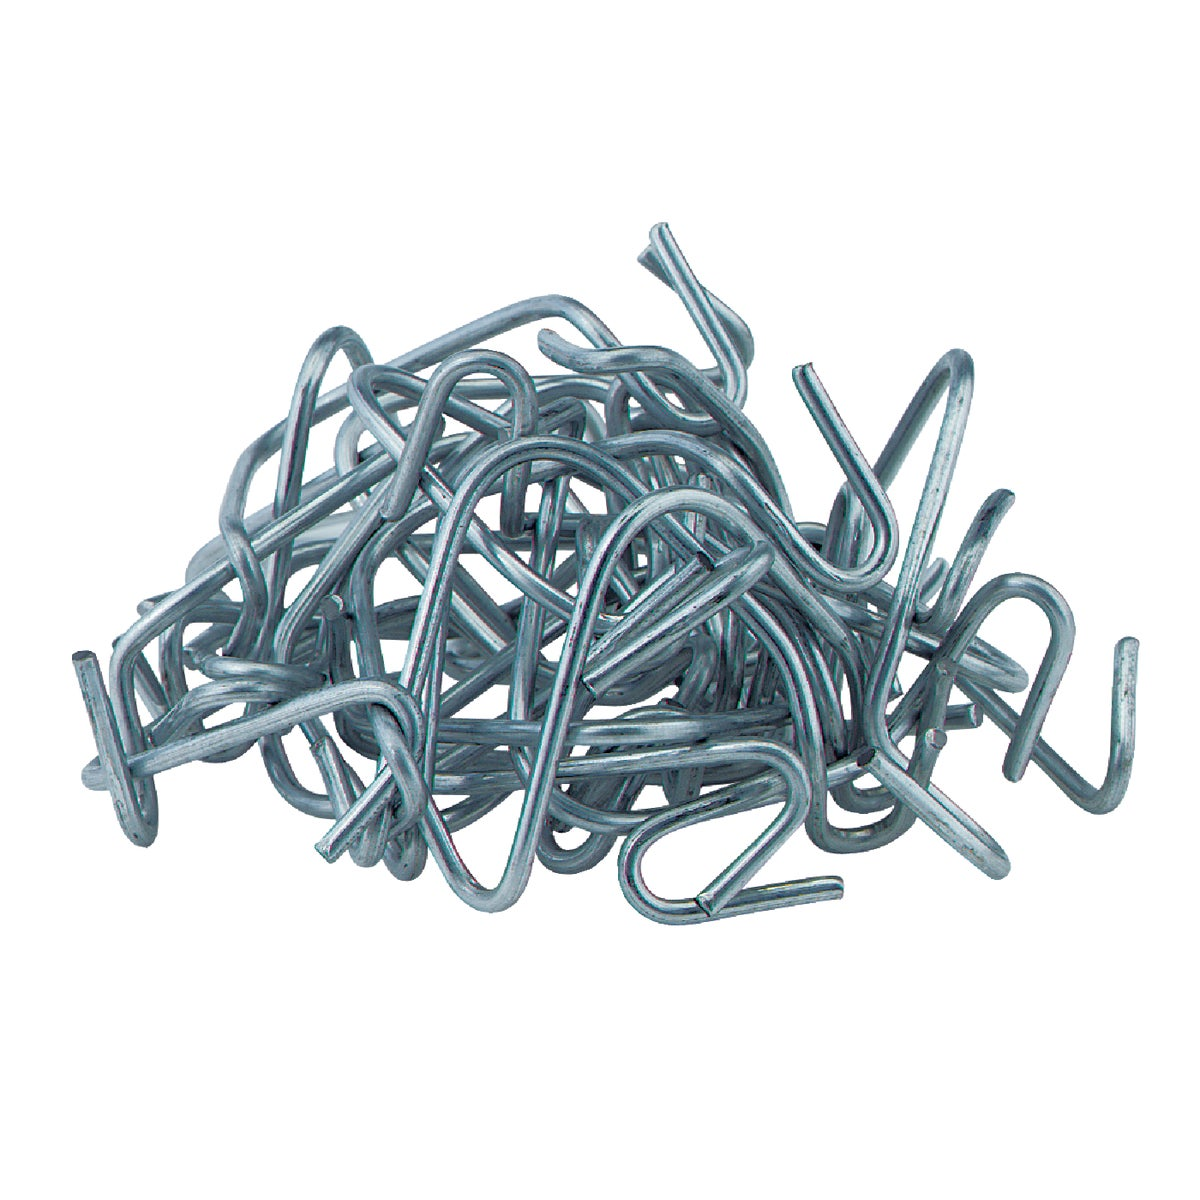 25PC T-POST CLIPS - 718824 by Do it Best